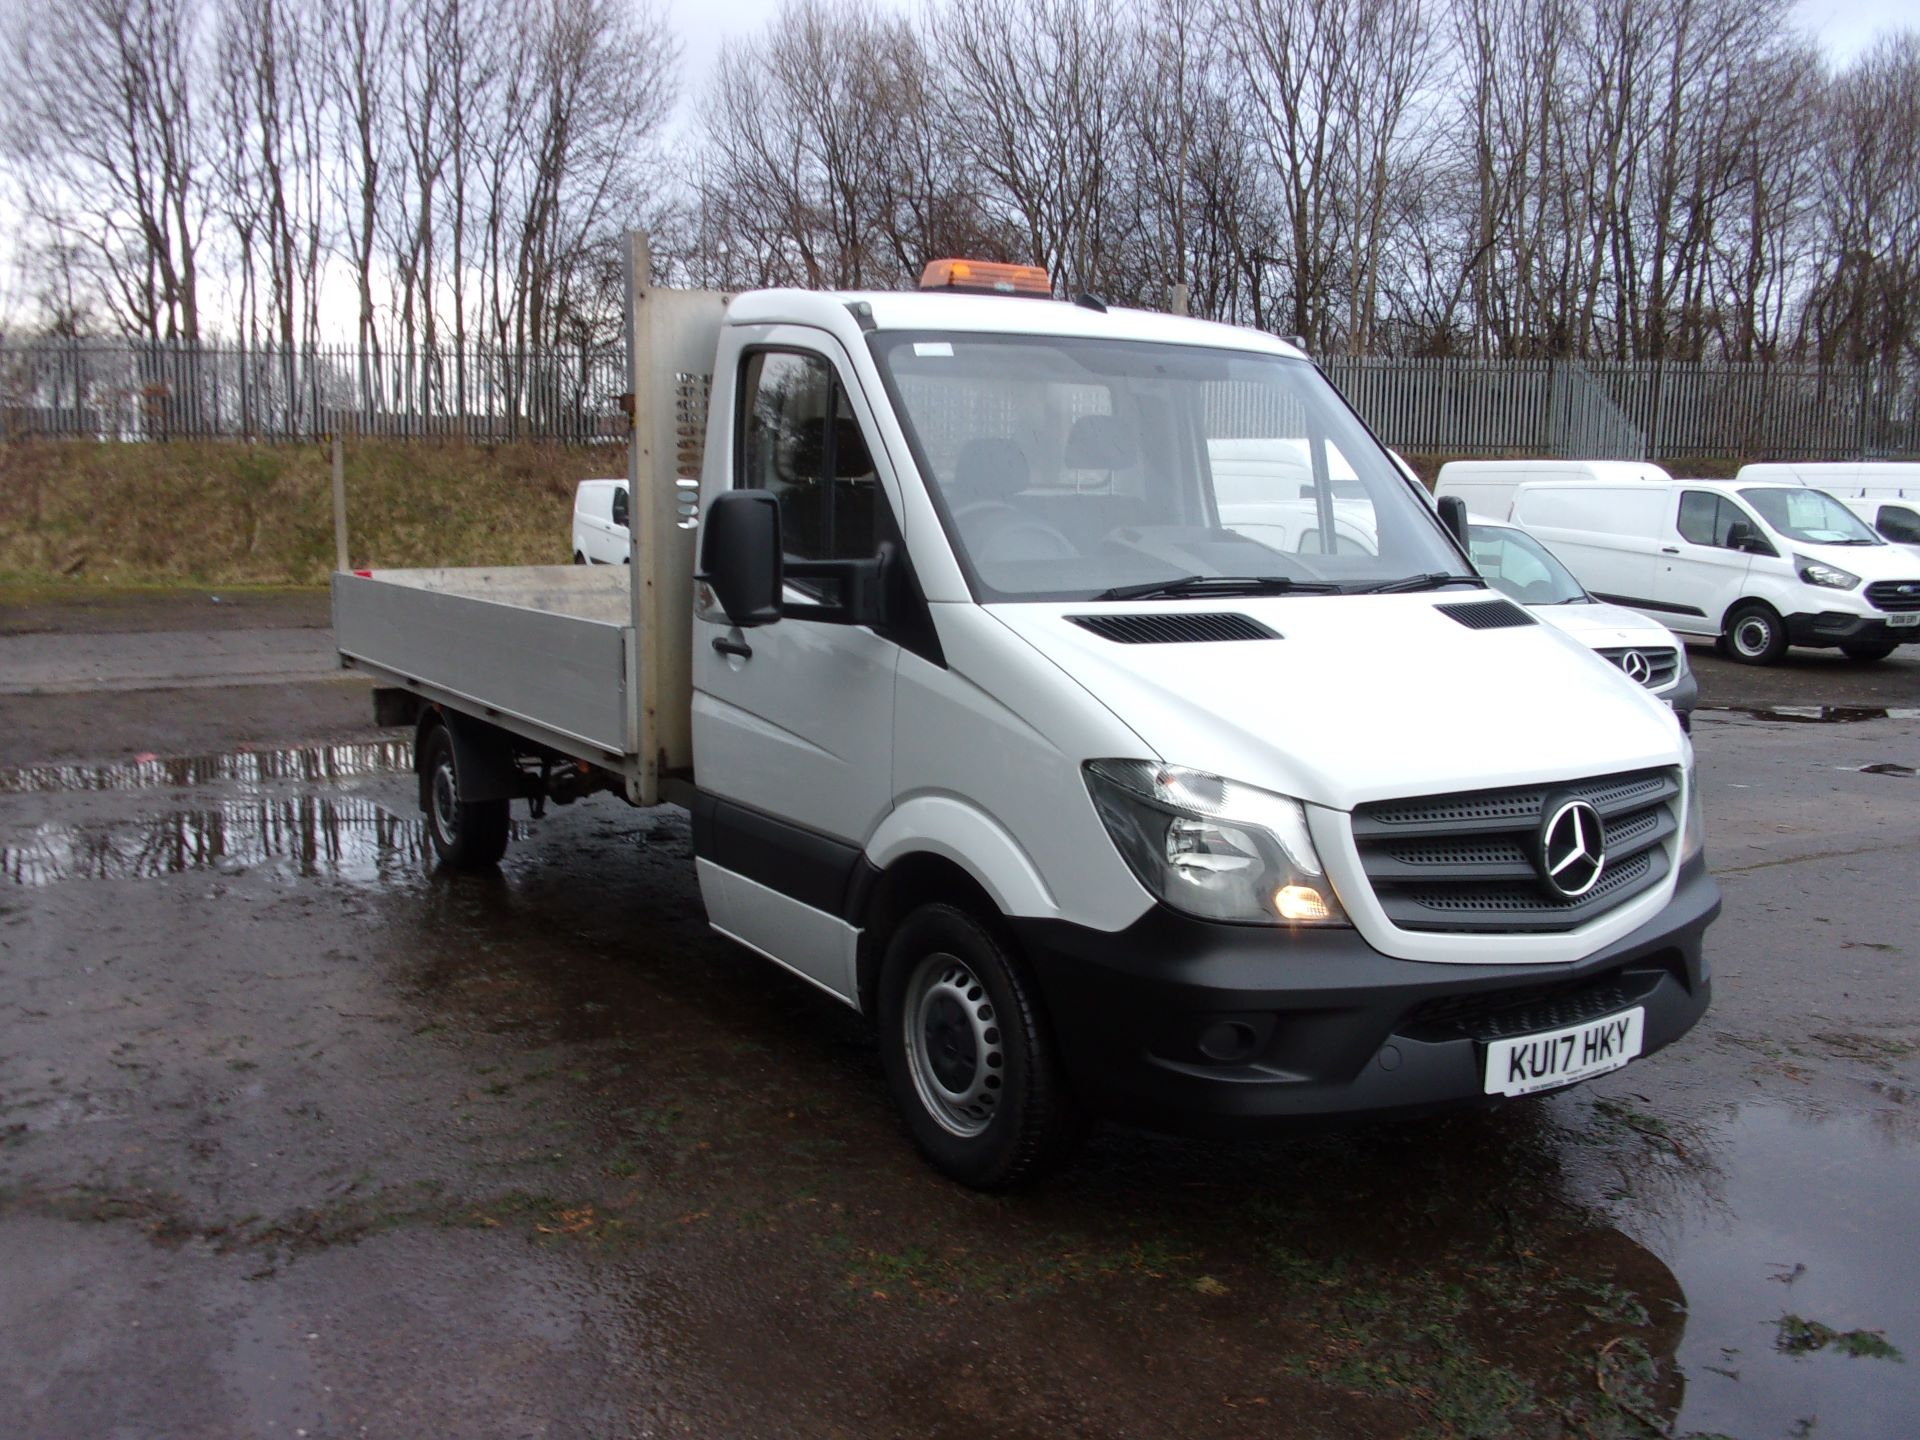 2017 Mercedes-Benz Sprinter 314 CDI LWB SINGLE CAB DROPSIDE EURO 6 (KU17HKY)